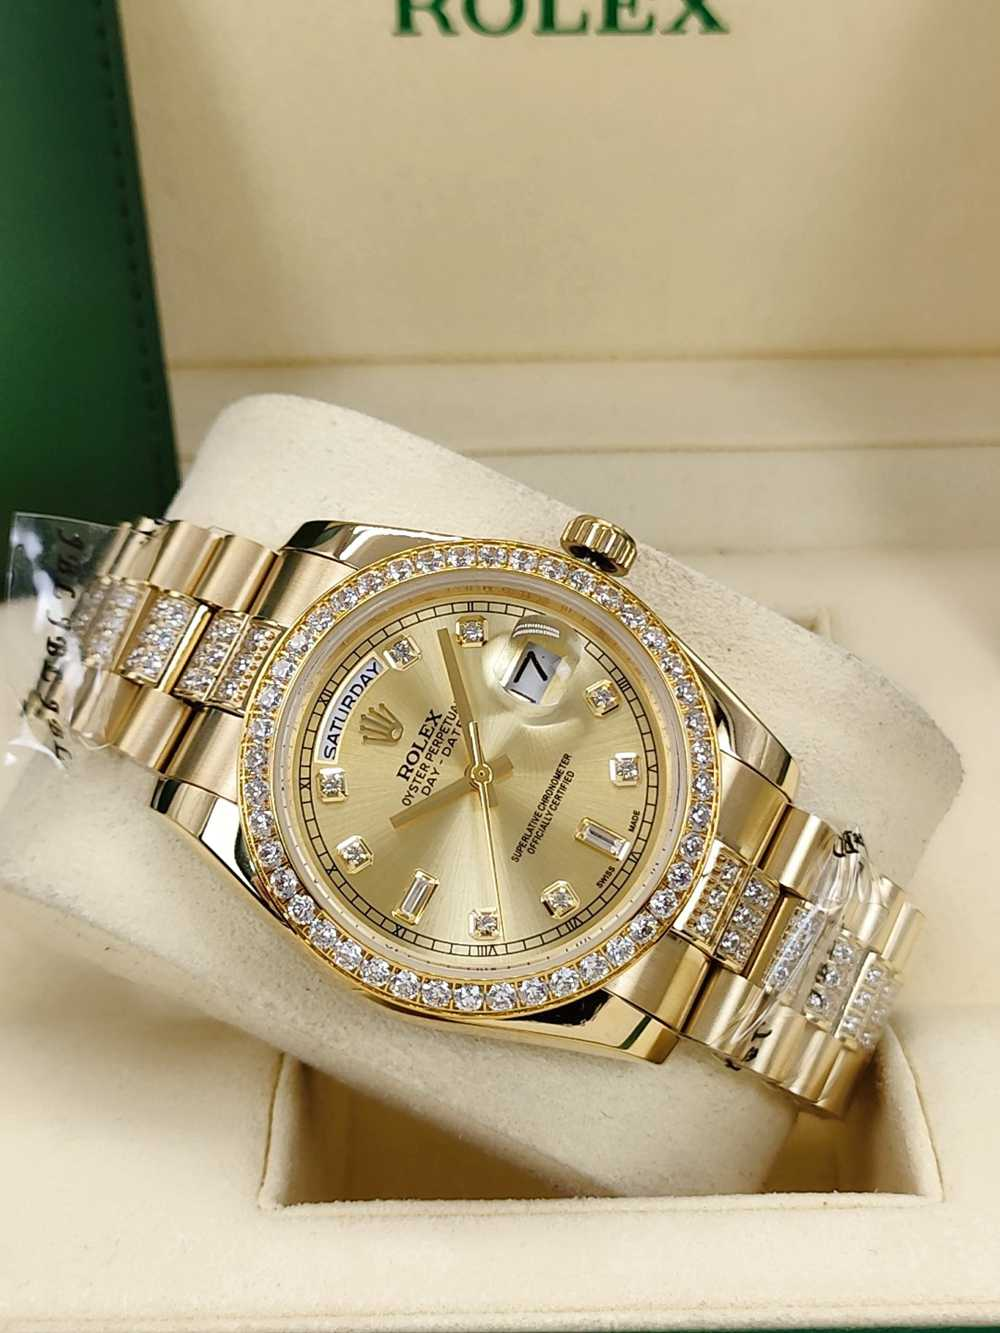 DayDate 36mm AAA automatic gold case gold face stone numbers diamonds strap S040